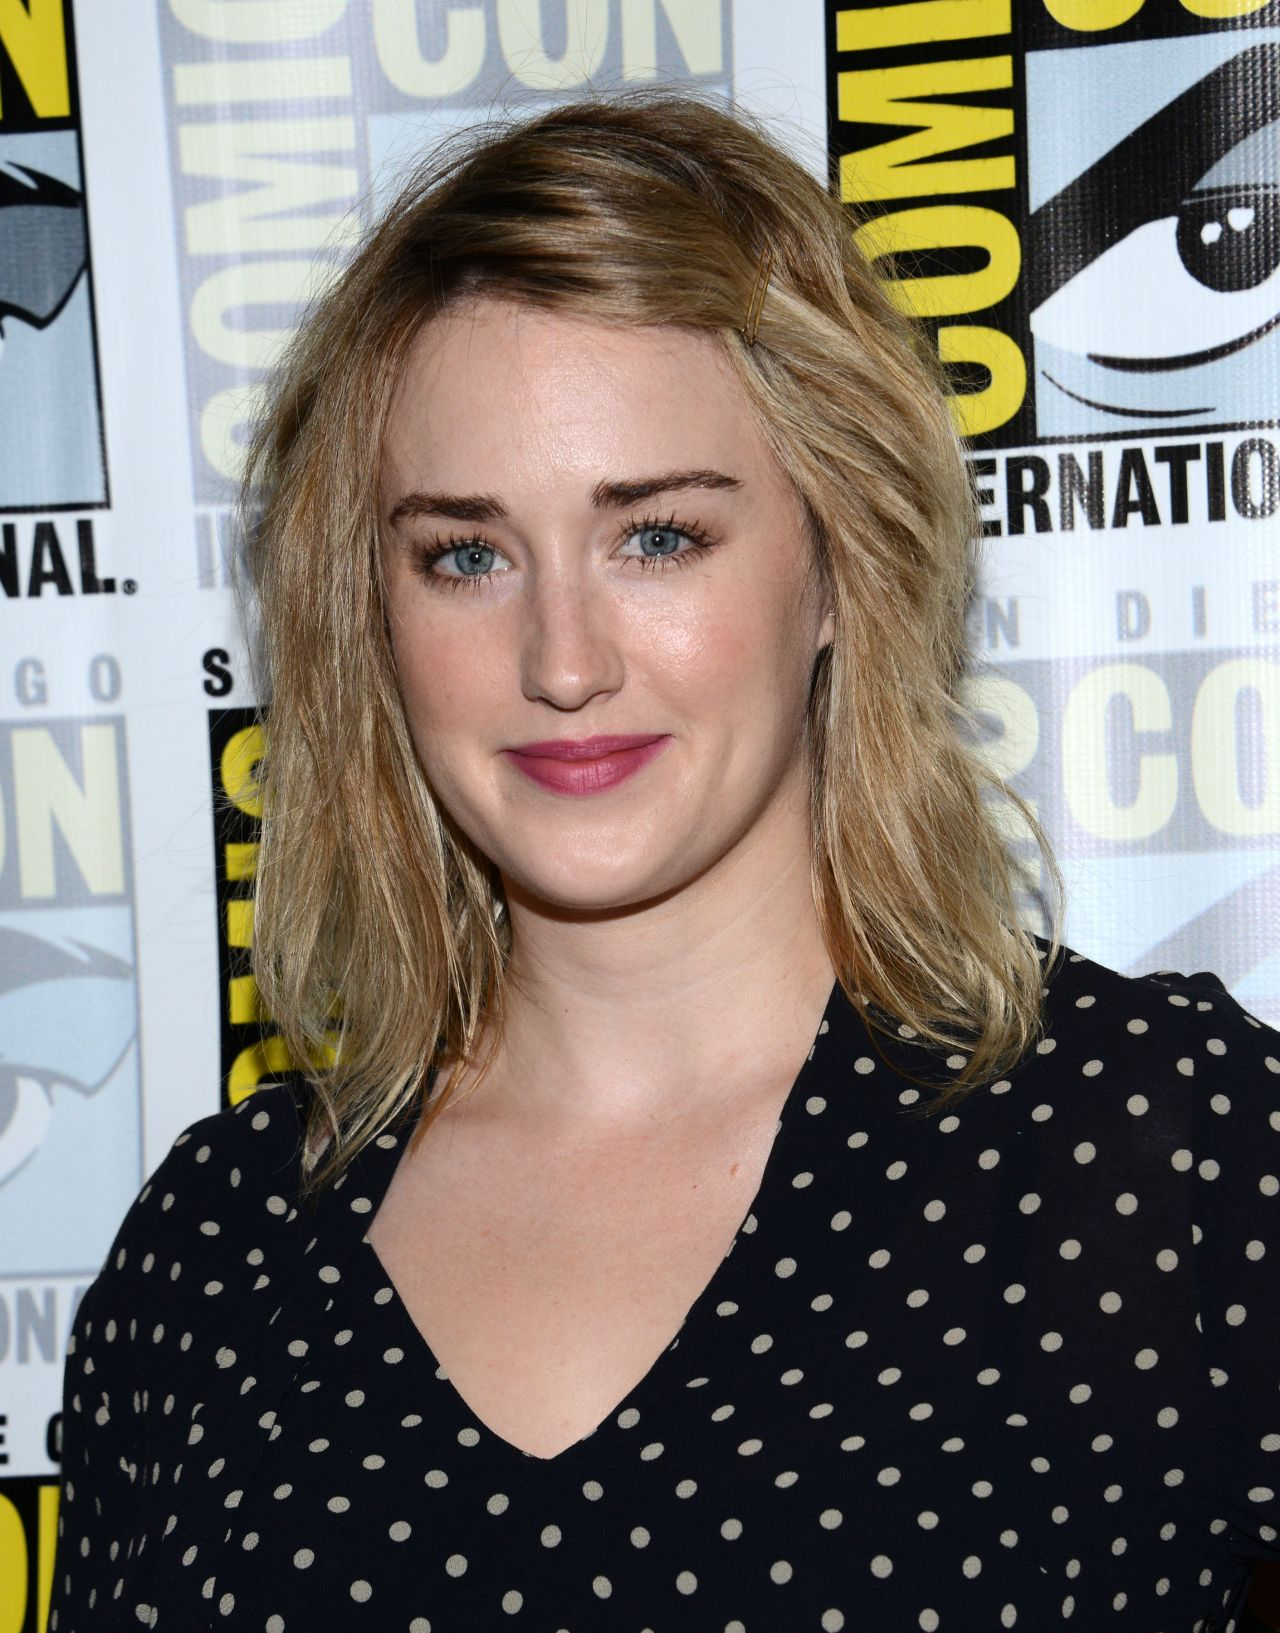 ashley johnson through the valley lyricsashley johnson – through the valley, ashley johnson through the valley перевод, ashley johnson the last of us, ashley johnson through the valley скачать, ashley johnson instagram, ashley johnson through the valley аккорды, ashley johnson through the valley download, ashley johnson tumblr, ashley johnson vk, ashley johnson borderlands, ashley johnson through, ashley johnson through the valley lyrics, ashley johnson house of the rising sun, ashley johnson music, ashley johnson lionheart, ashley johnson 2016, ashley johnson imdb, ashley johnson looks like, ashley johnson sing, ashley johnson (i)